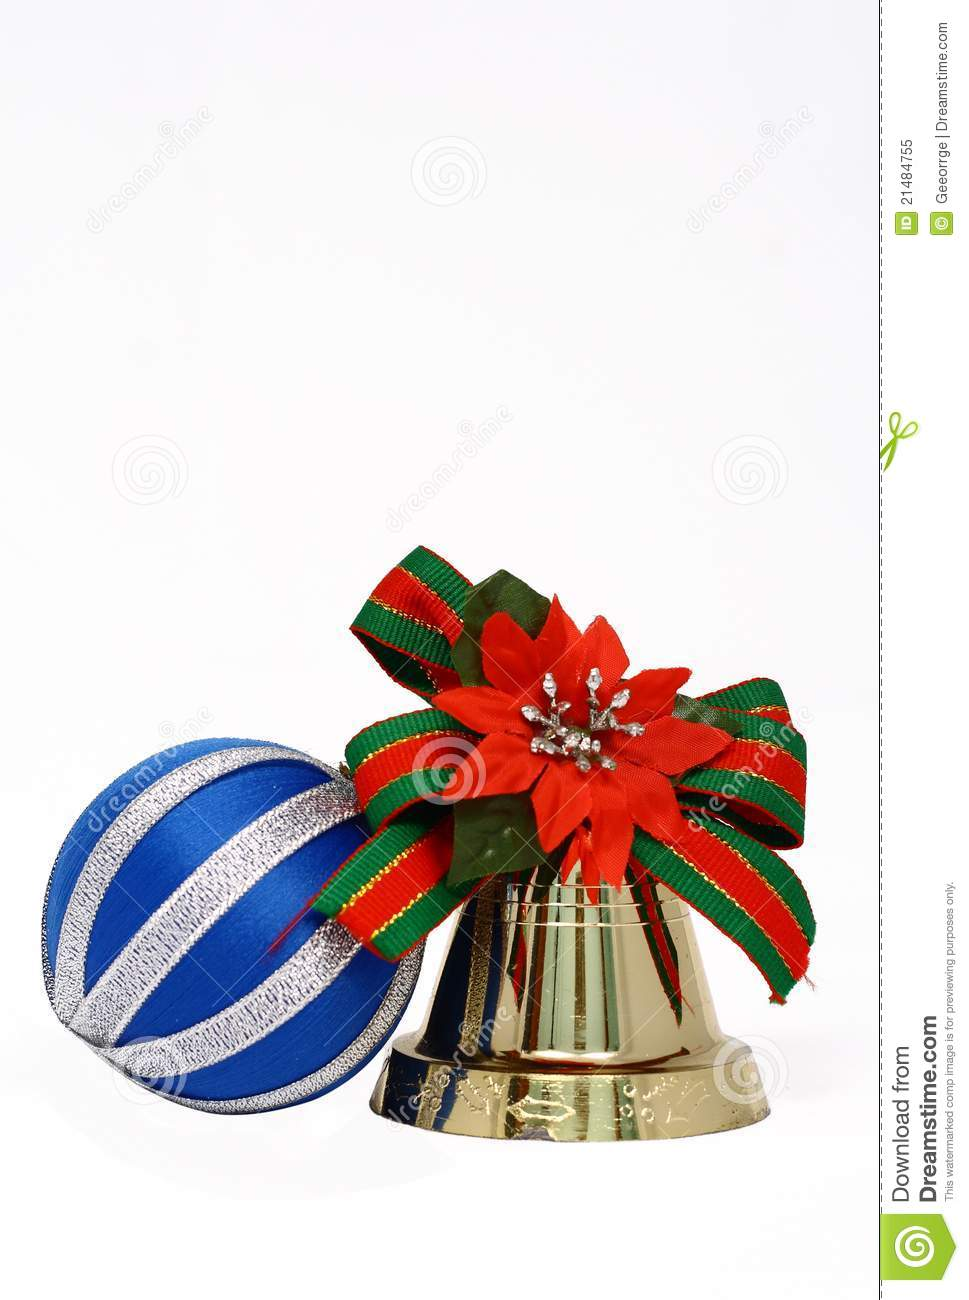 Sound of xmas royalty free stock photo image 21484755 - Happy new year sound europe ...